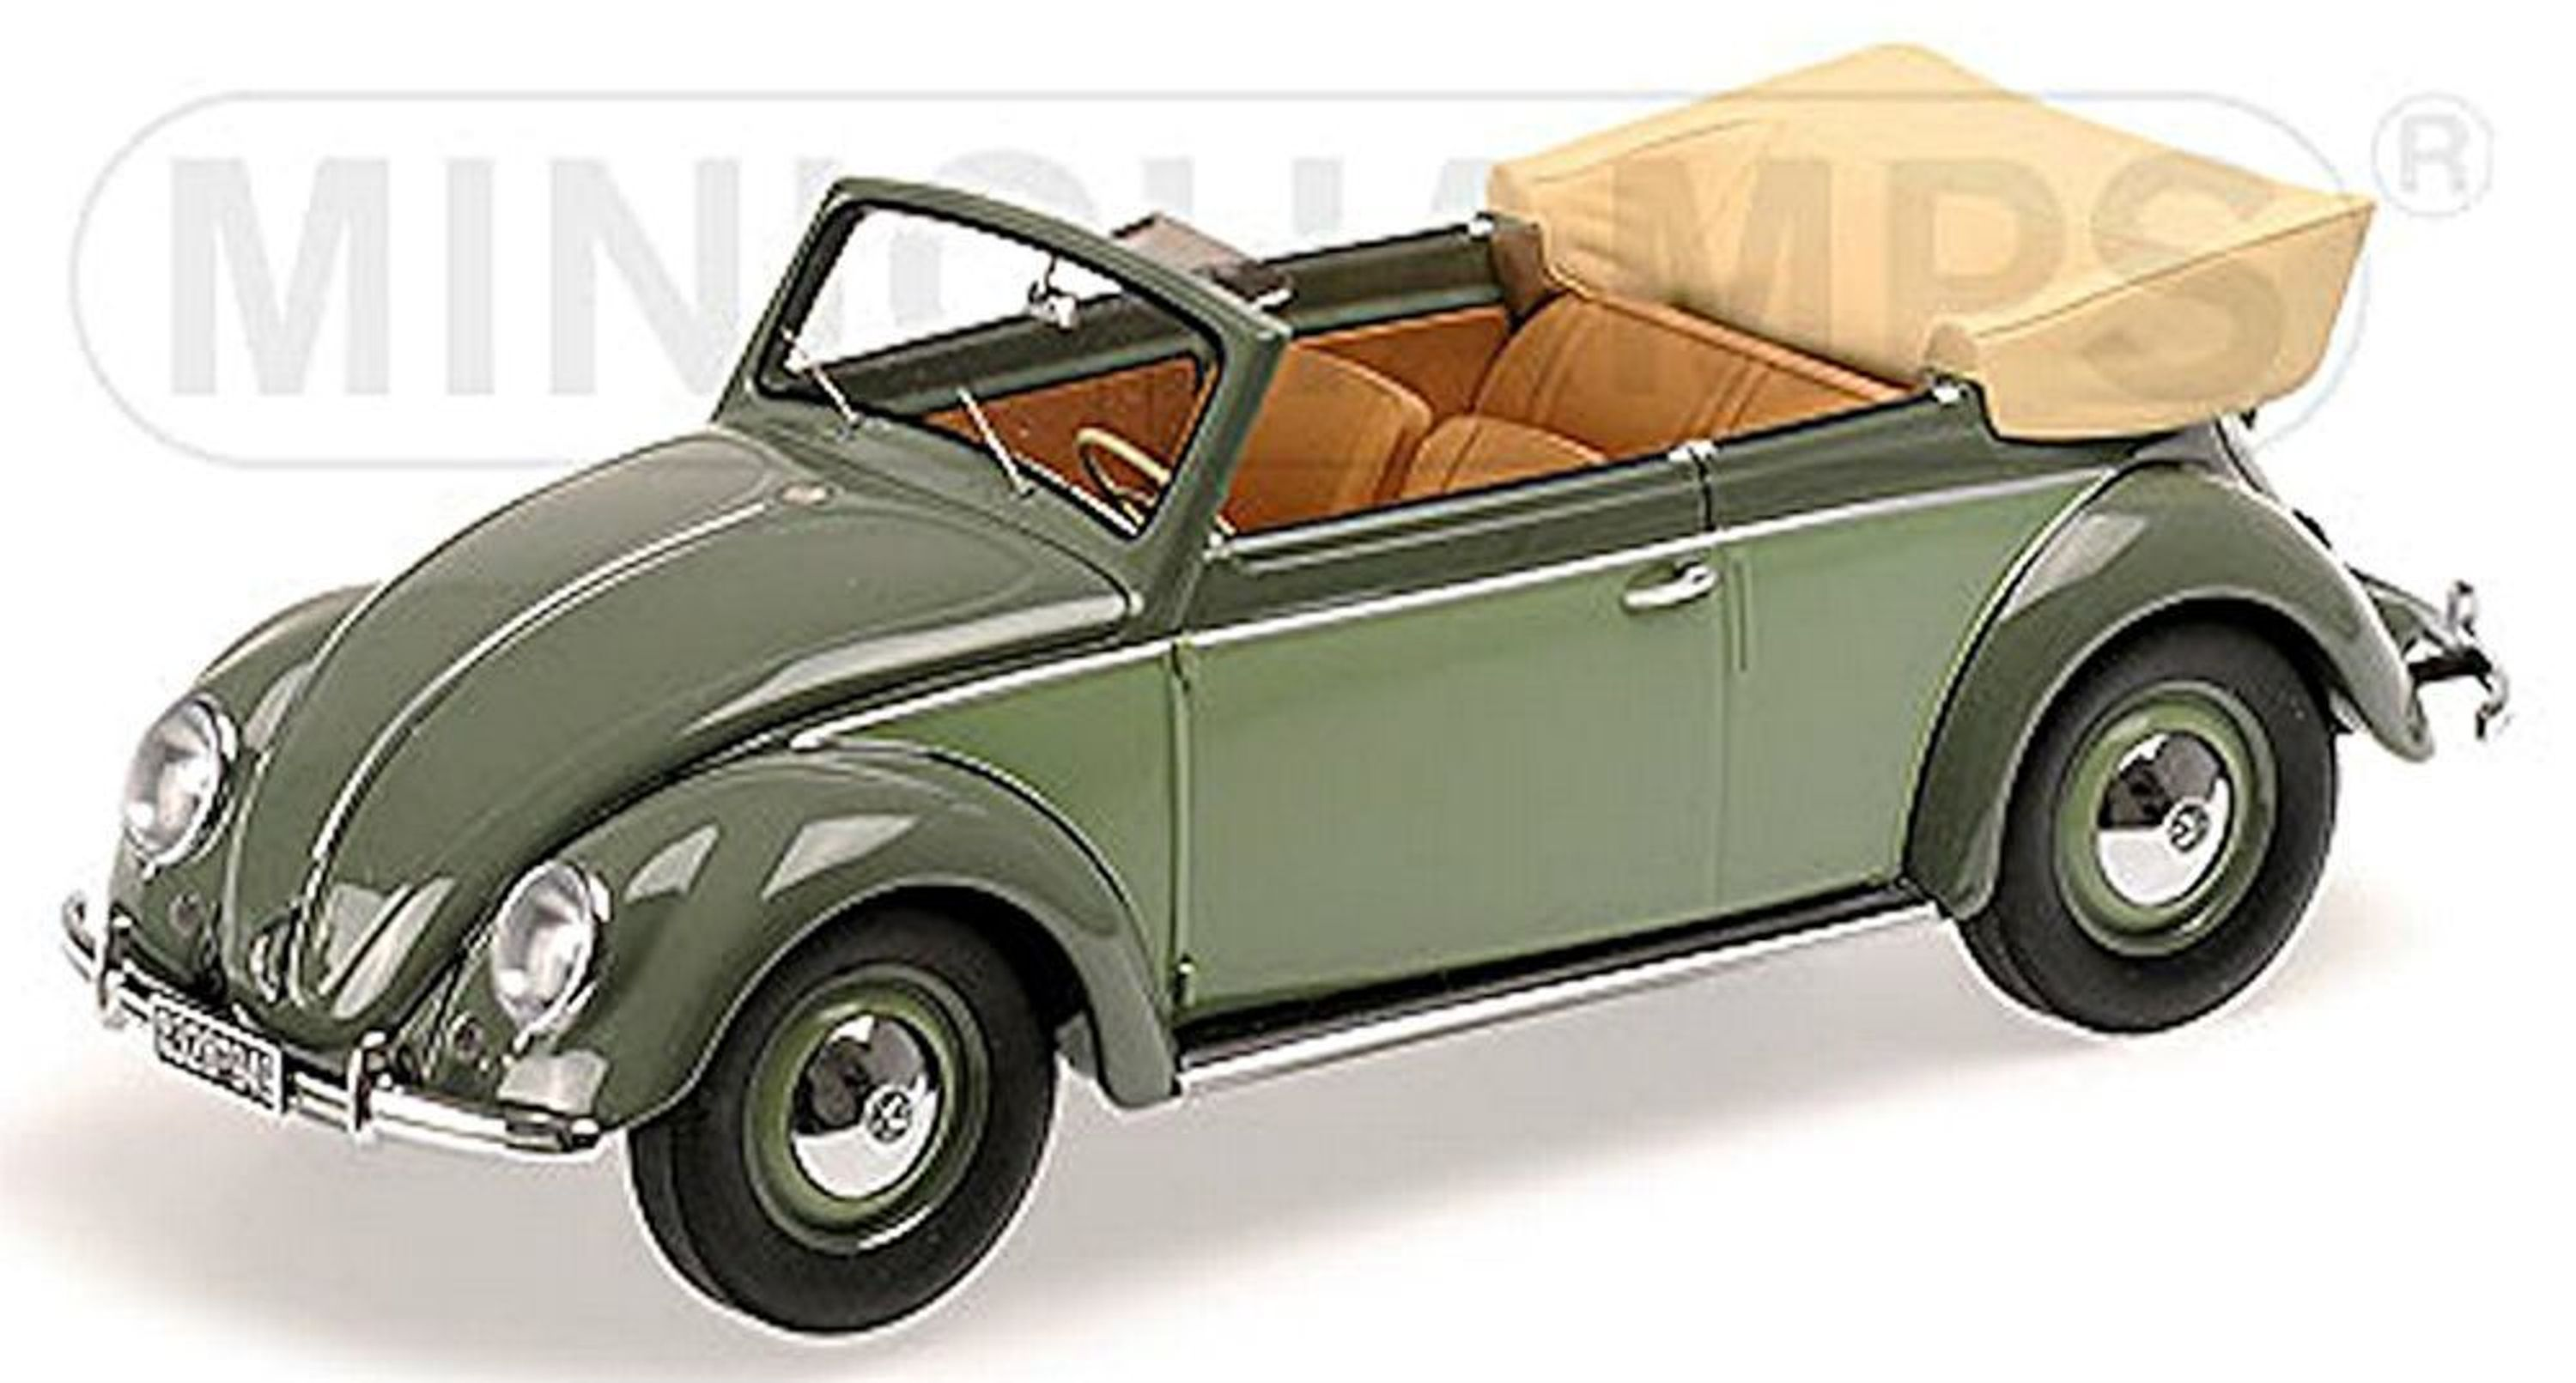 vw volkswagen coccinelle cabriolet beetle convertible 1949 vert 1 18 minichamps ebay. Black Bedroom Furniture Sets. Home Design Ideas